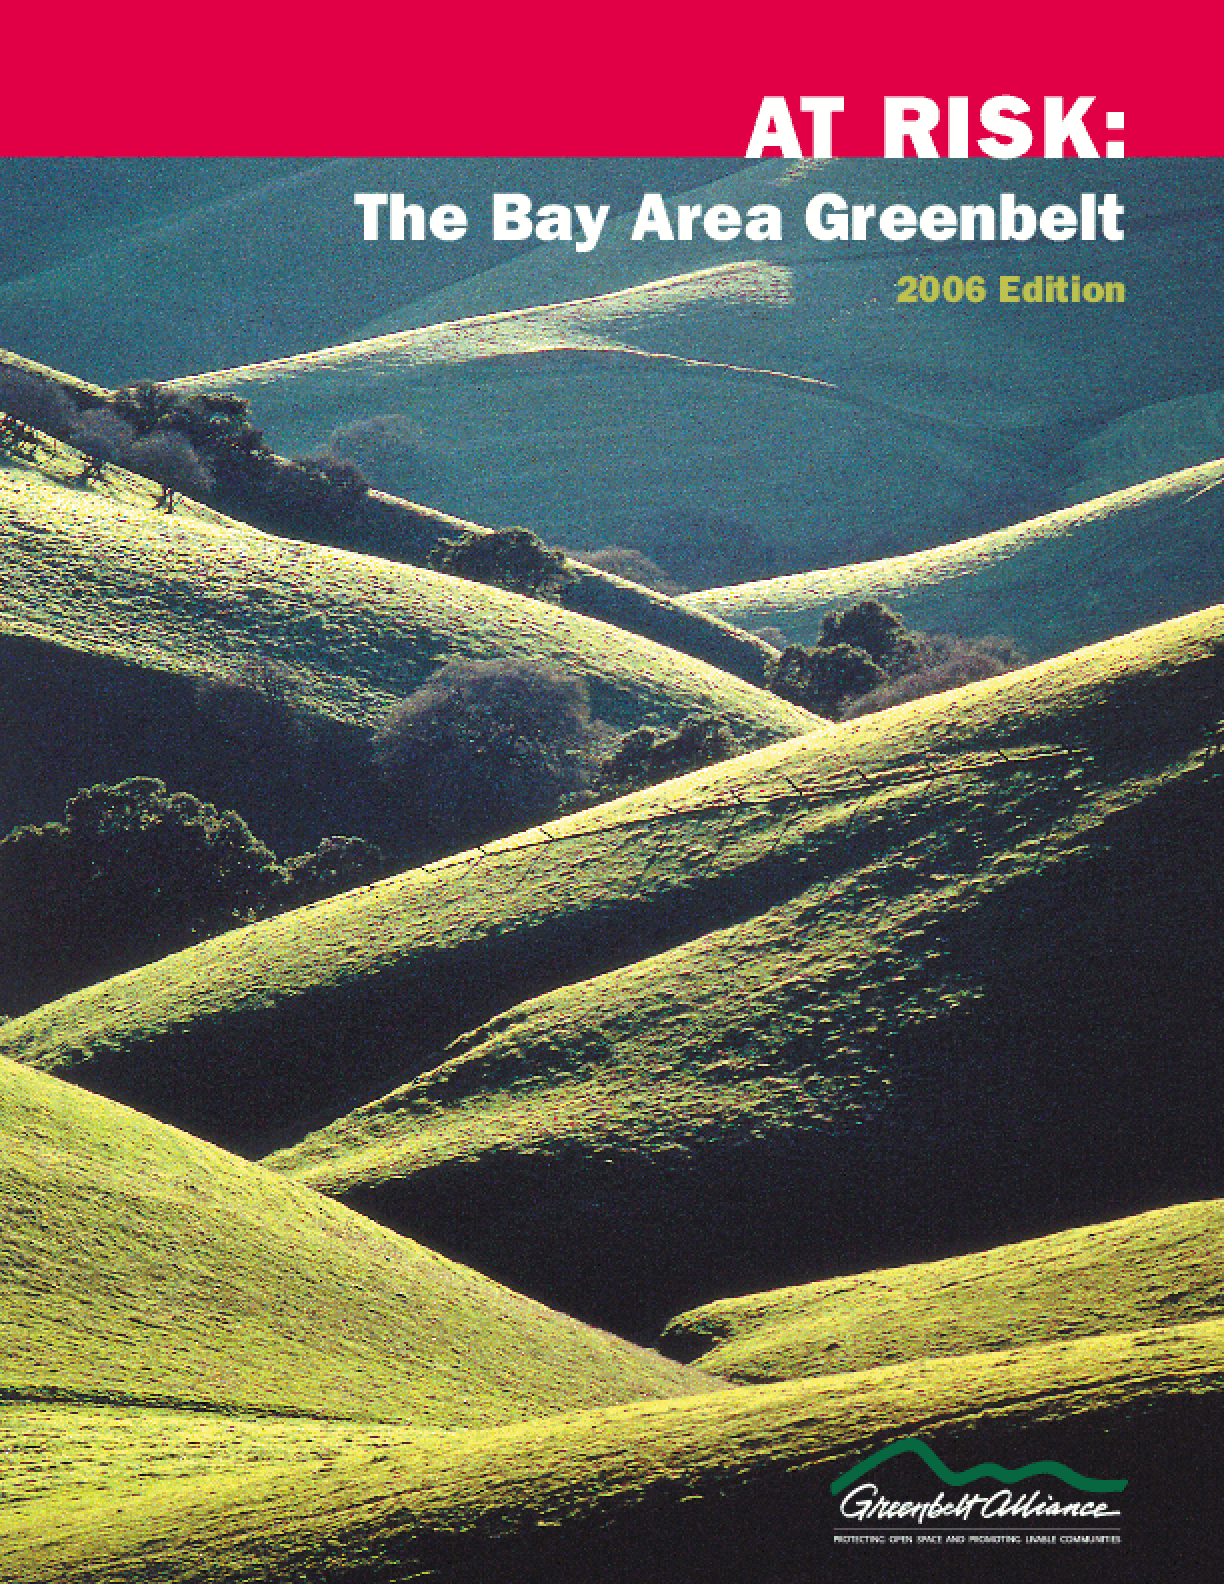 At Risk: The Bay Area Greenbelt